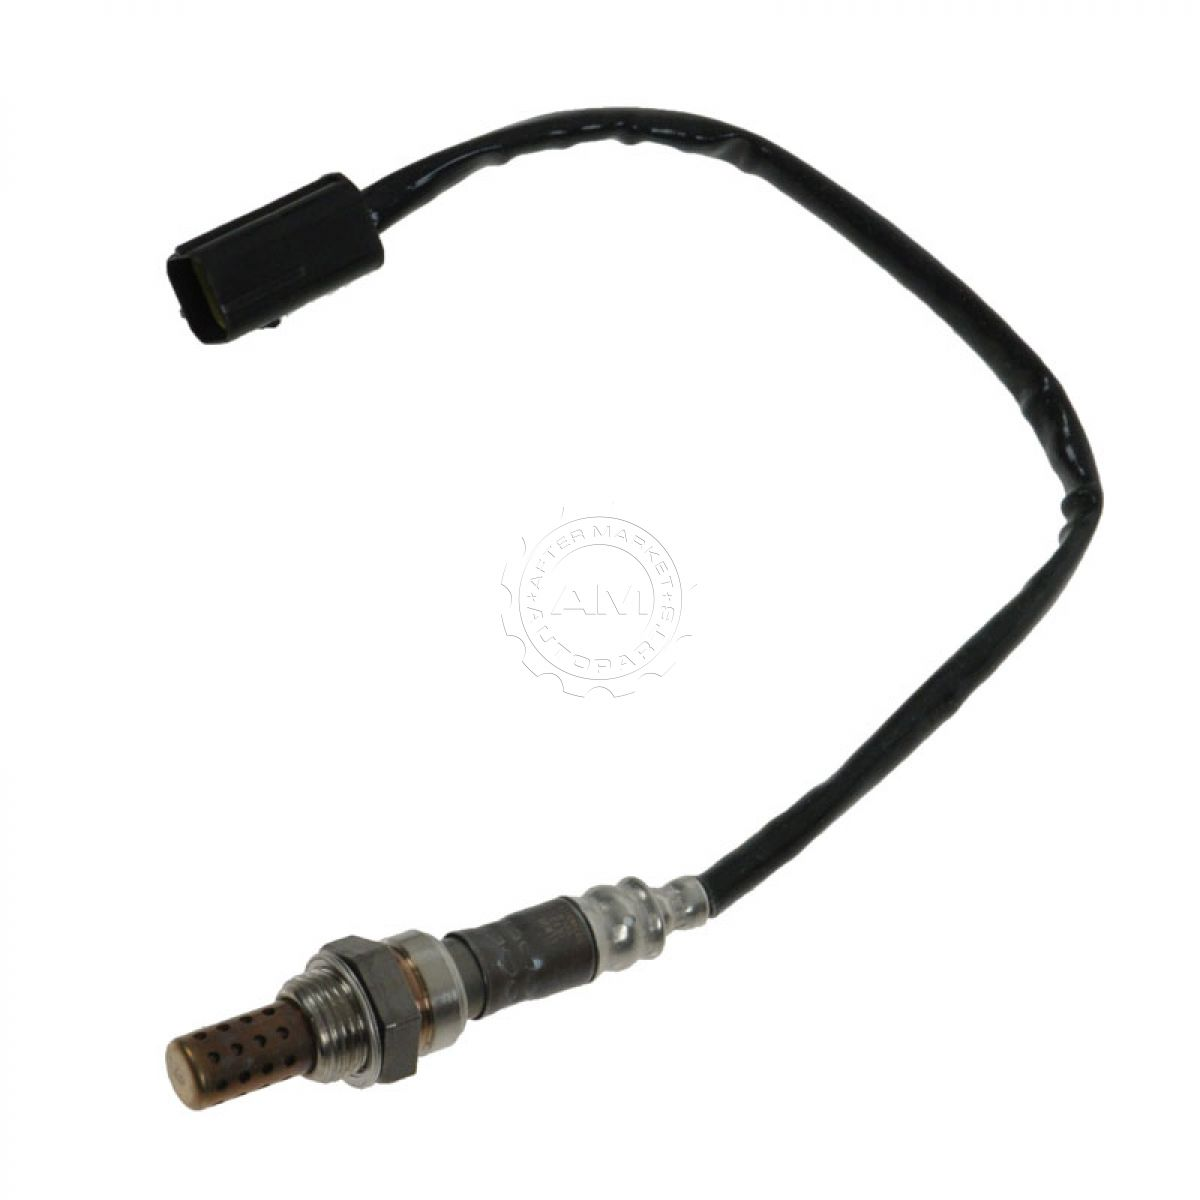 O2 02 Oxygen Sensor for Mazda 626 MX-6 929 Ford Probe